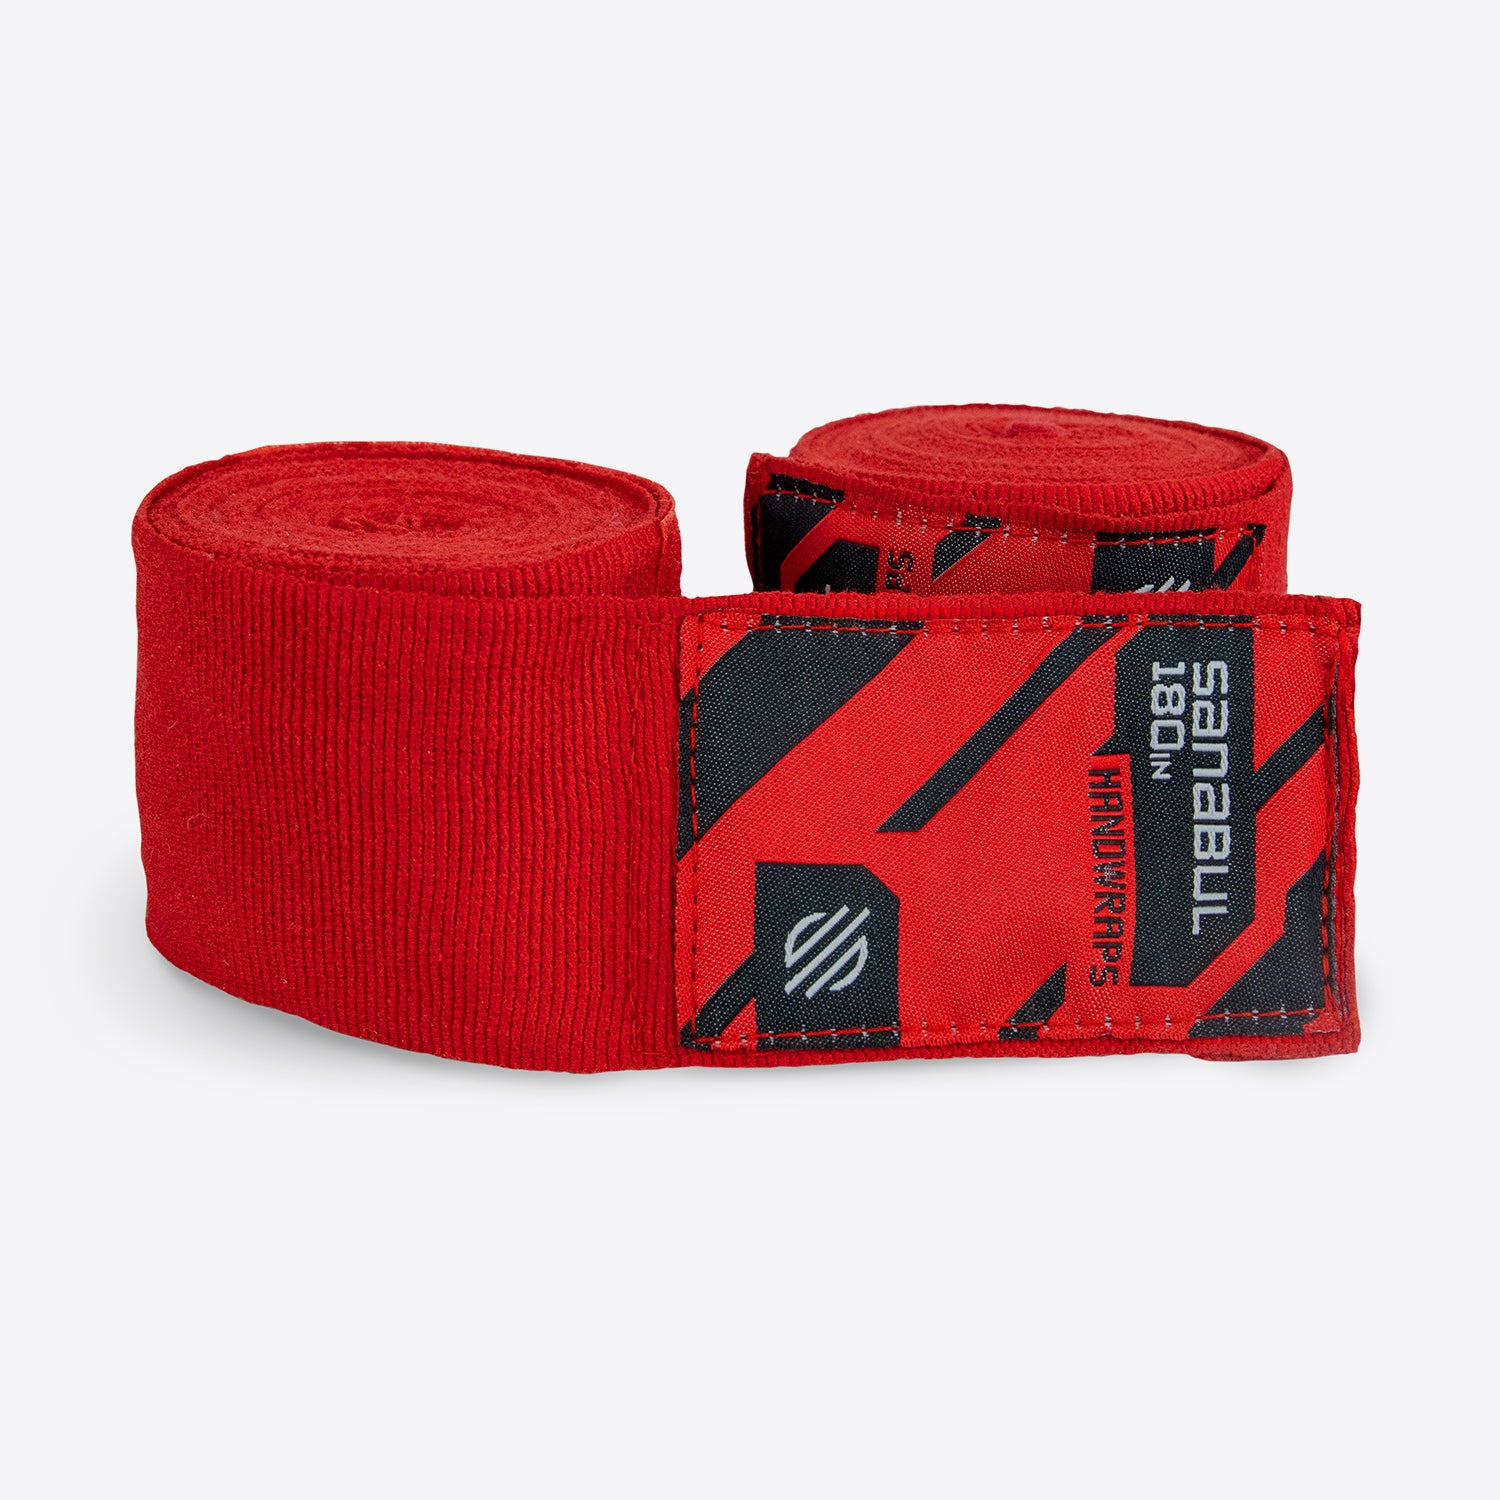 Sanabul Battle Forged Professional Non-Elastic 180 inch Hand Wraps Aawut-.. New